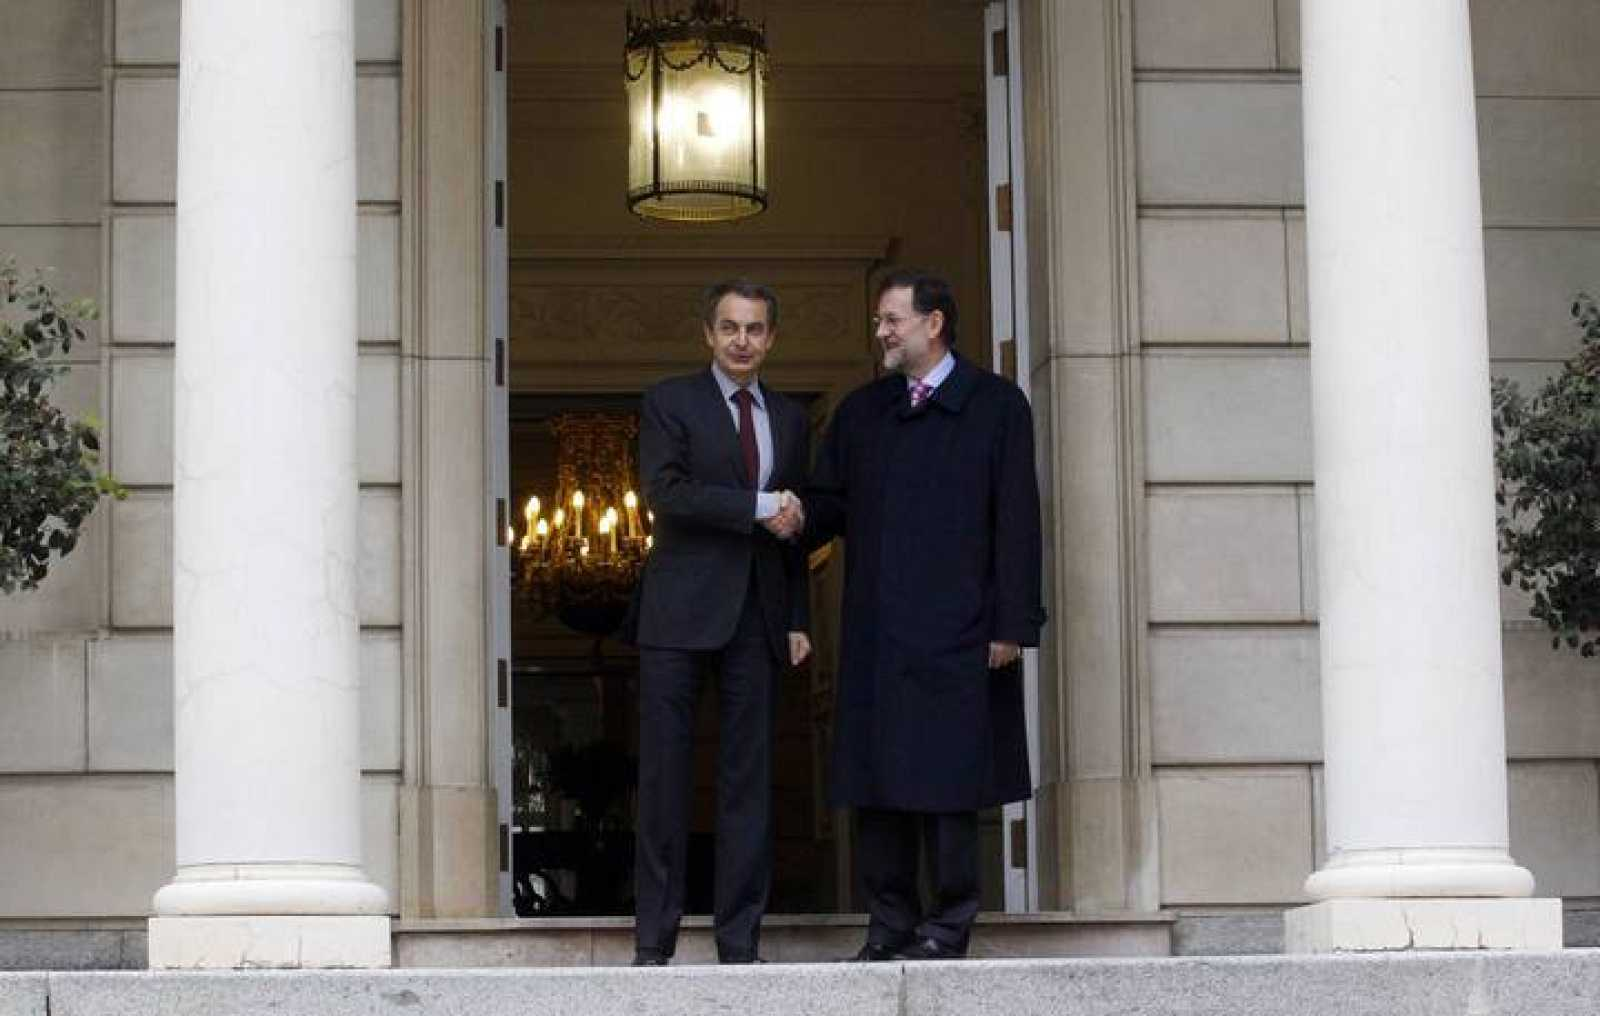 Spain's outgoing PM Jose Luis Rodriguez Zapatero shakes hands with incoming PM Mariano Rajoy during a meeting in Madrid